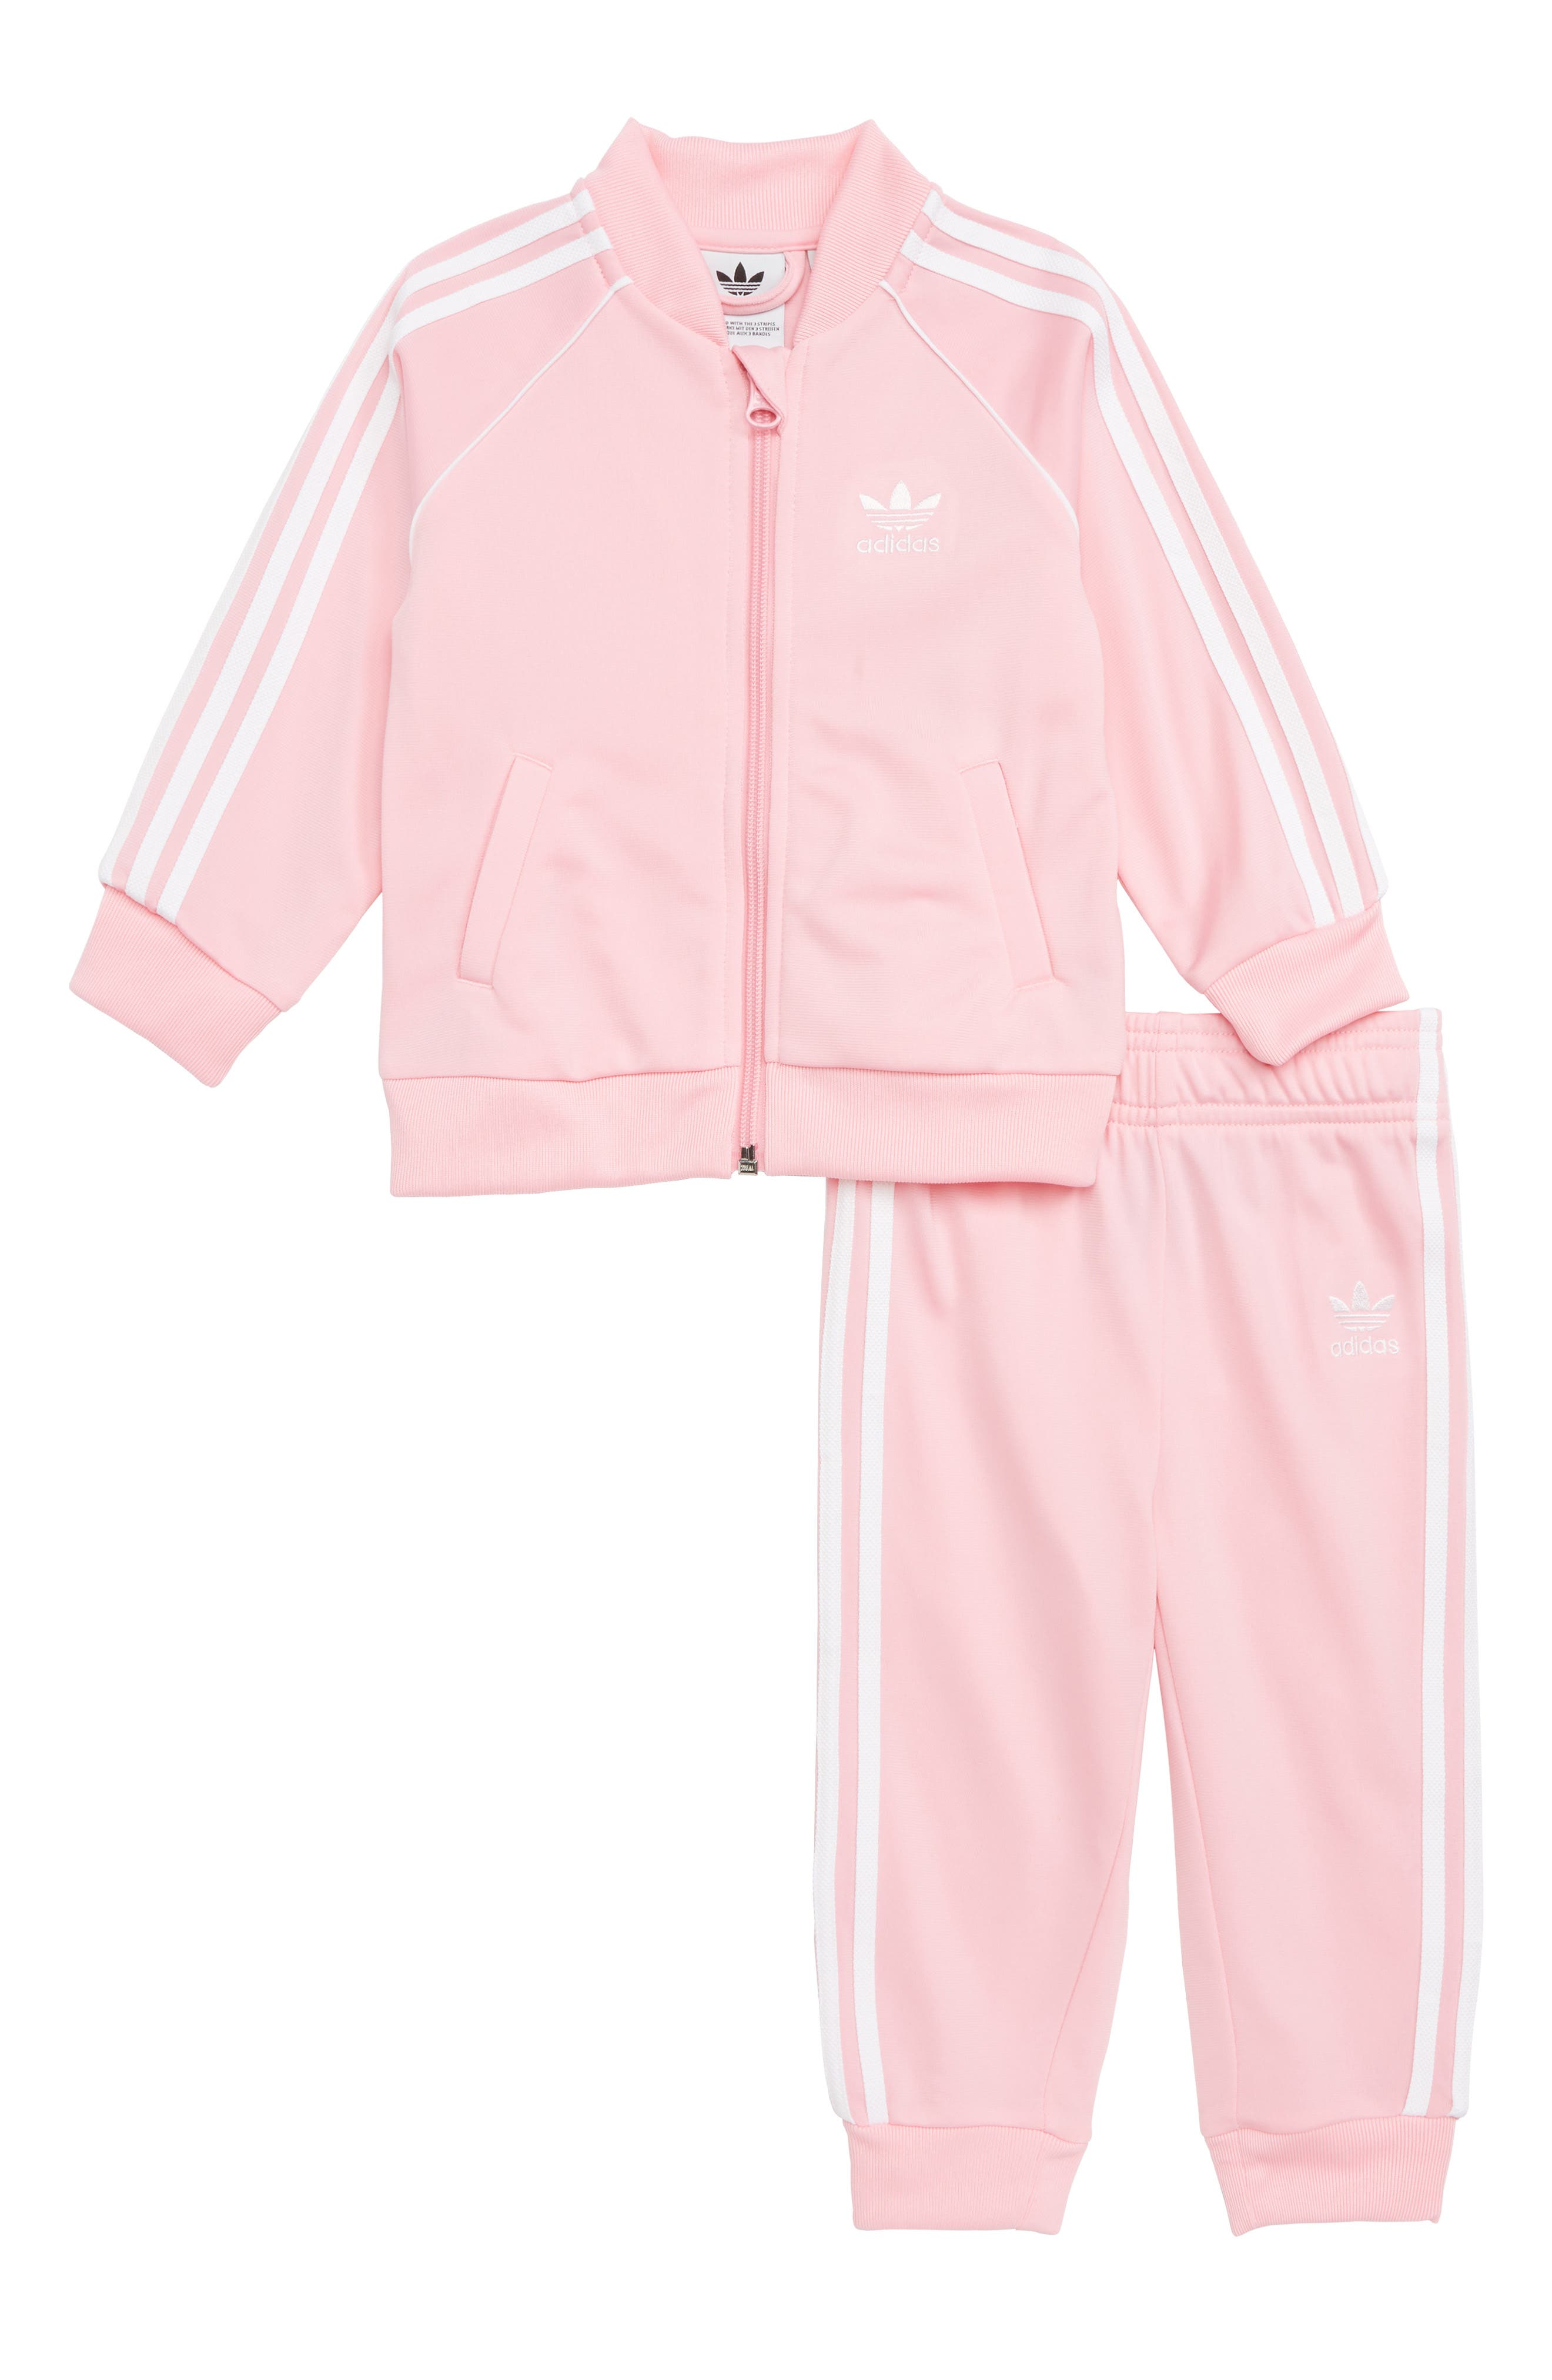 Superstar Track Jacket & Pants Gift Set,                             Main thumbnail 1, color,                             PINK/ WHITE